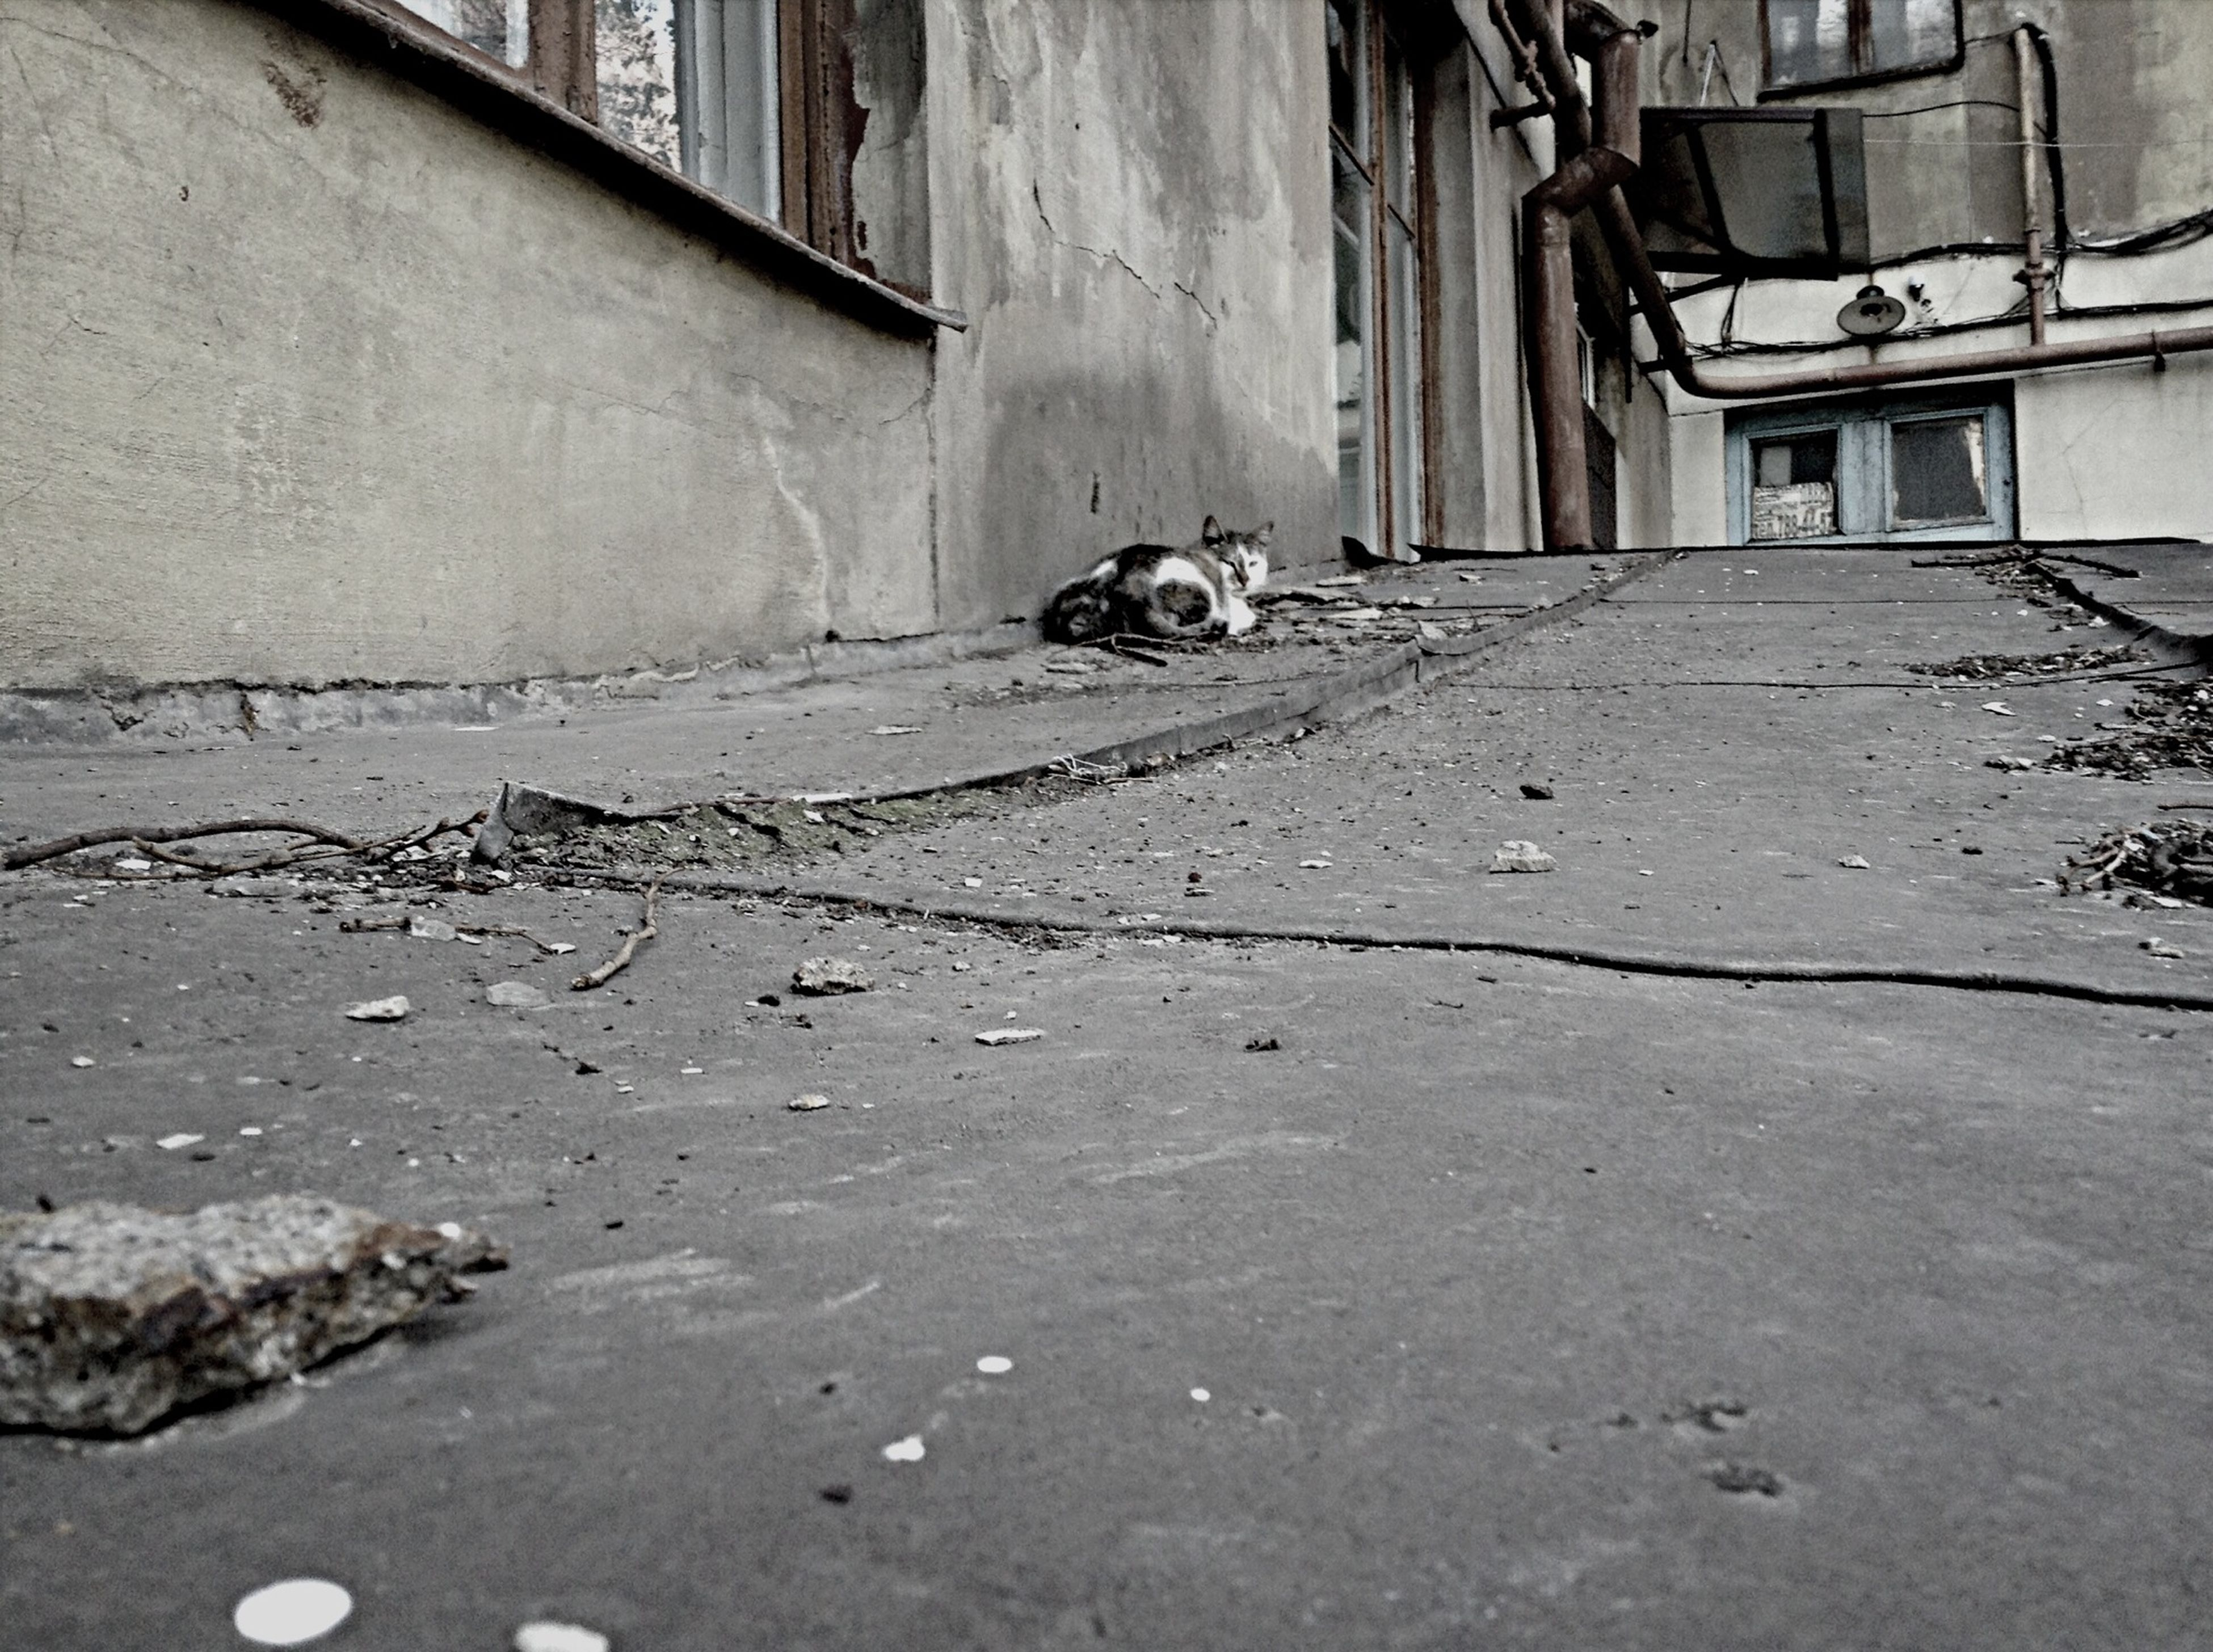 built structure, architecture, building exterior, house, street, the way forward, transportation, abandoned, building, day, wall - building feature, no people, outdoors, old, cobblestone, door, residential structure, surface level, empty, road